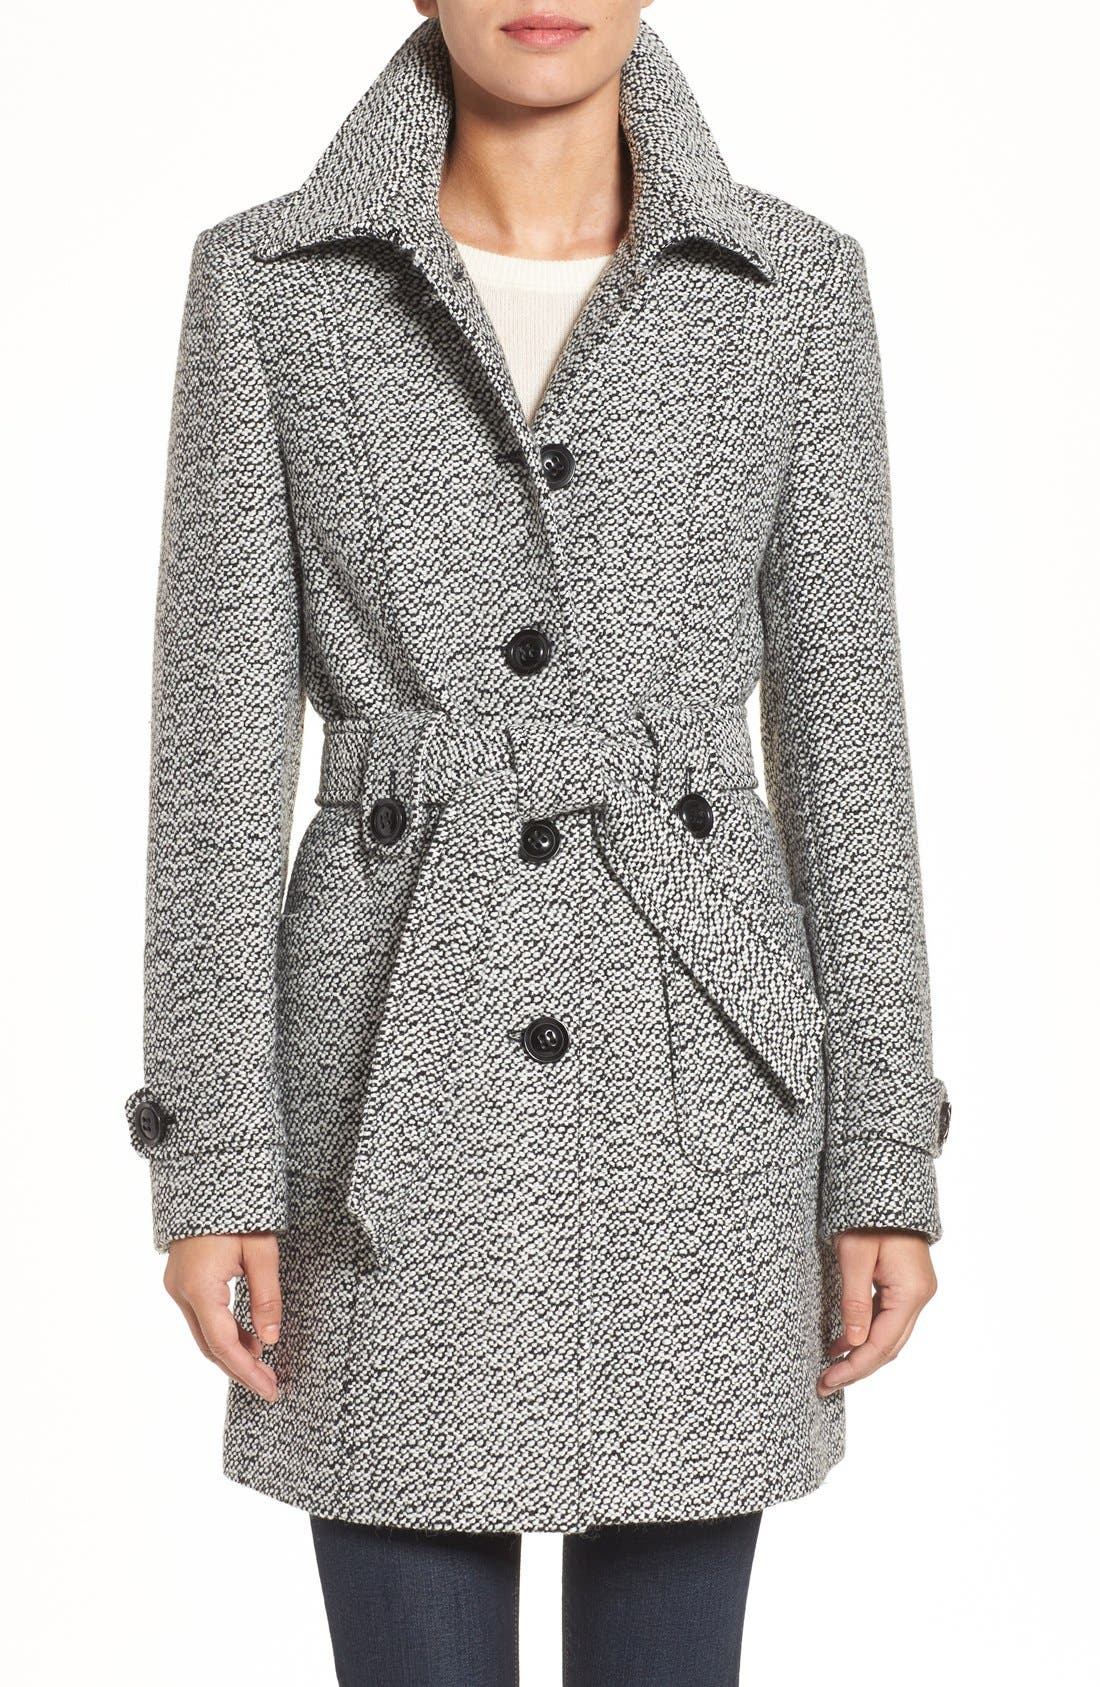 Belted Tweed Coat,                             Main thumbnail 1, color,                             Black/ White